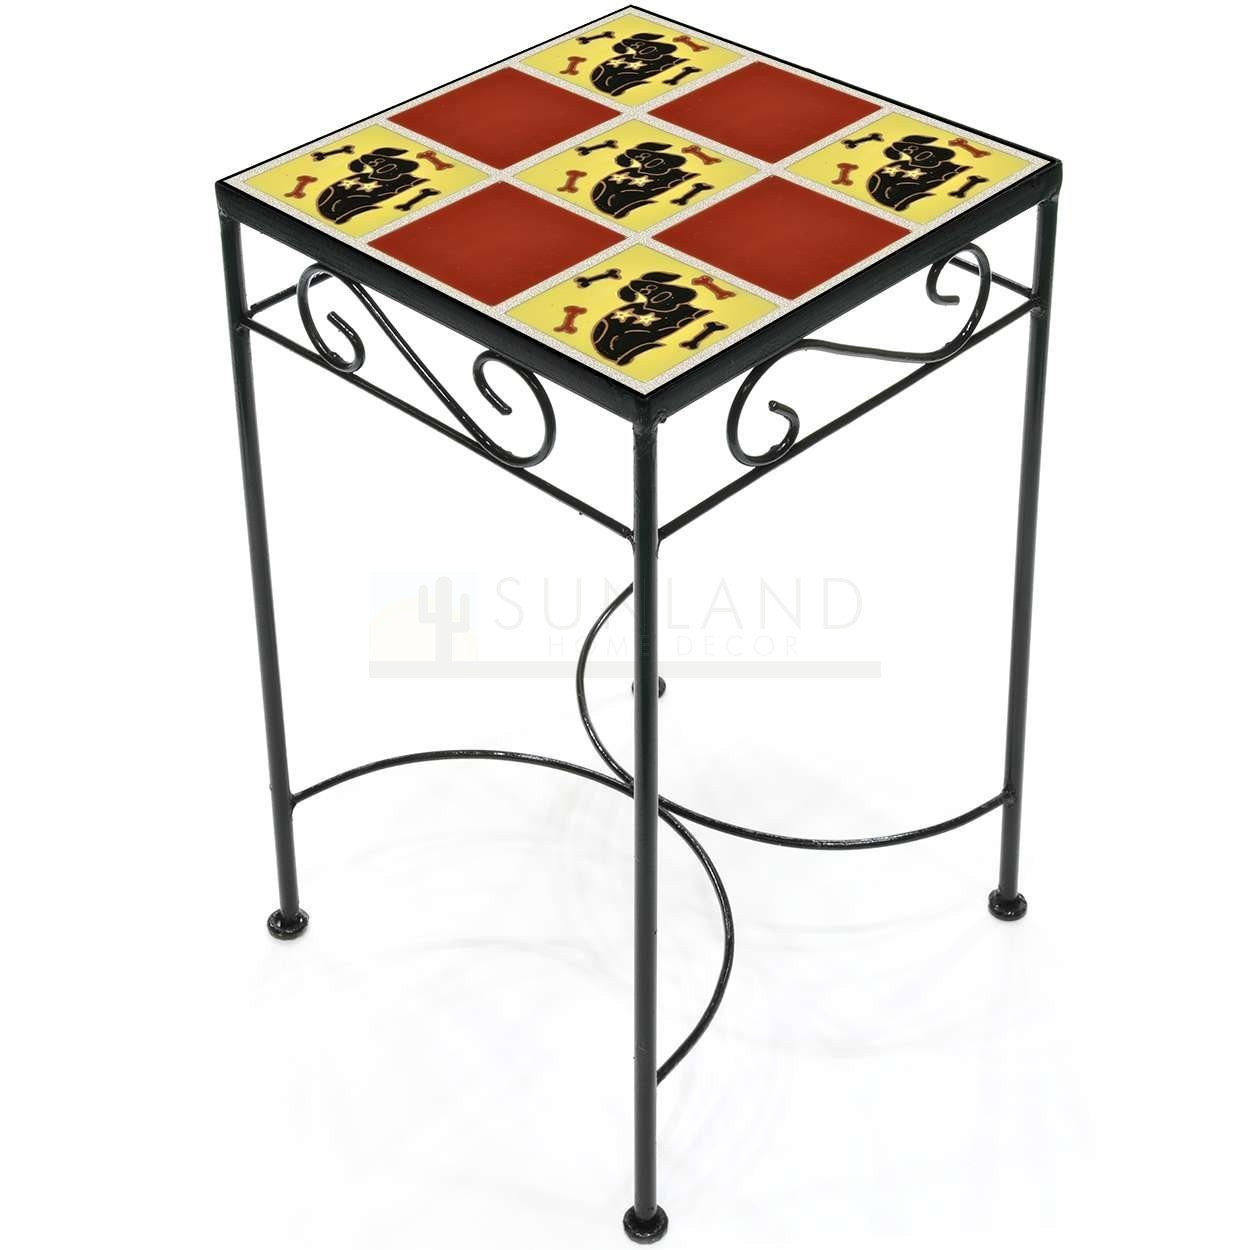 tile accent table dog and bones red outdoor square tall metal umbrella stand with wheels battery powered dining lamp marble side round silver coffee tray ethan allen vintage